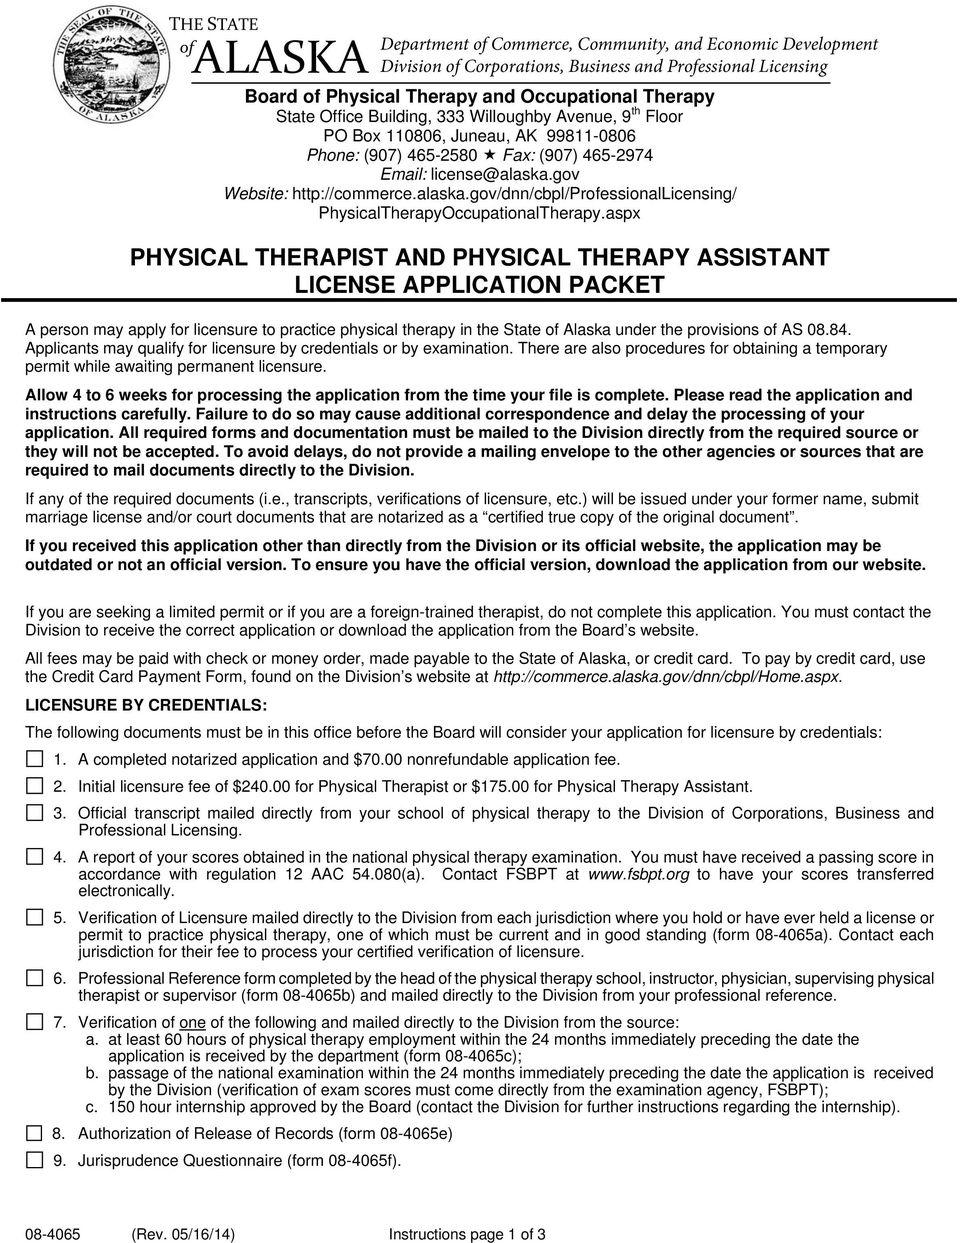 Physical Therapist And Physical Therapy Assistant License